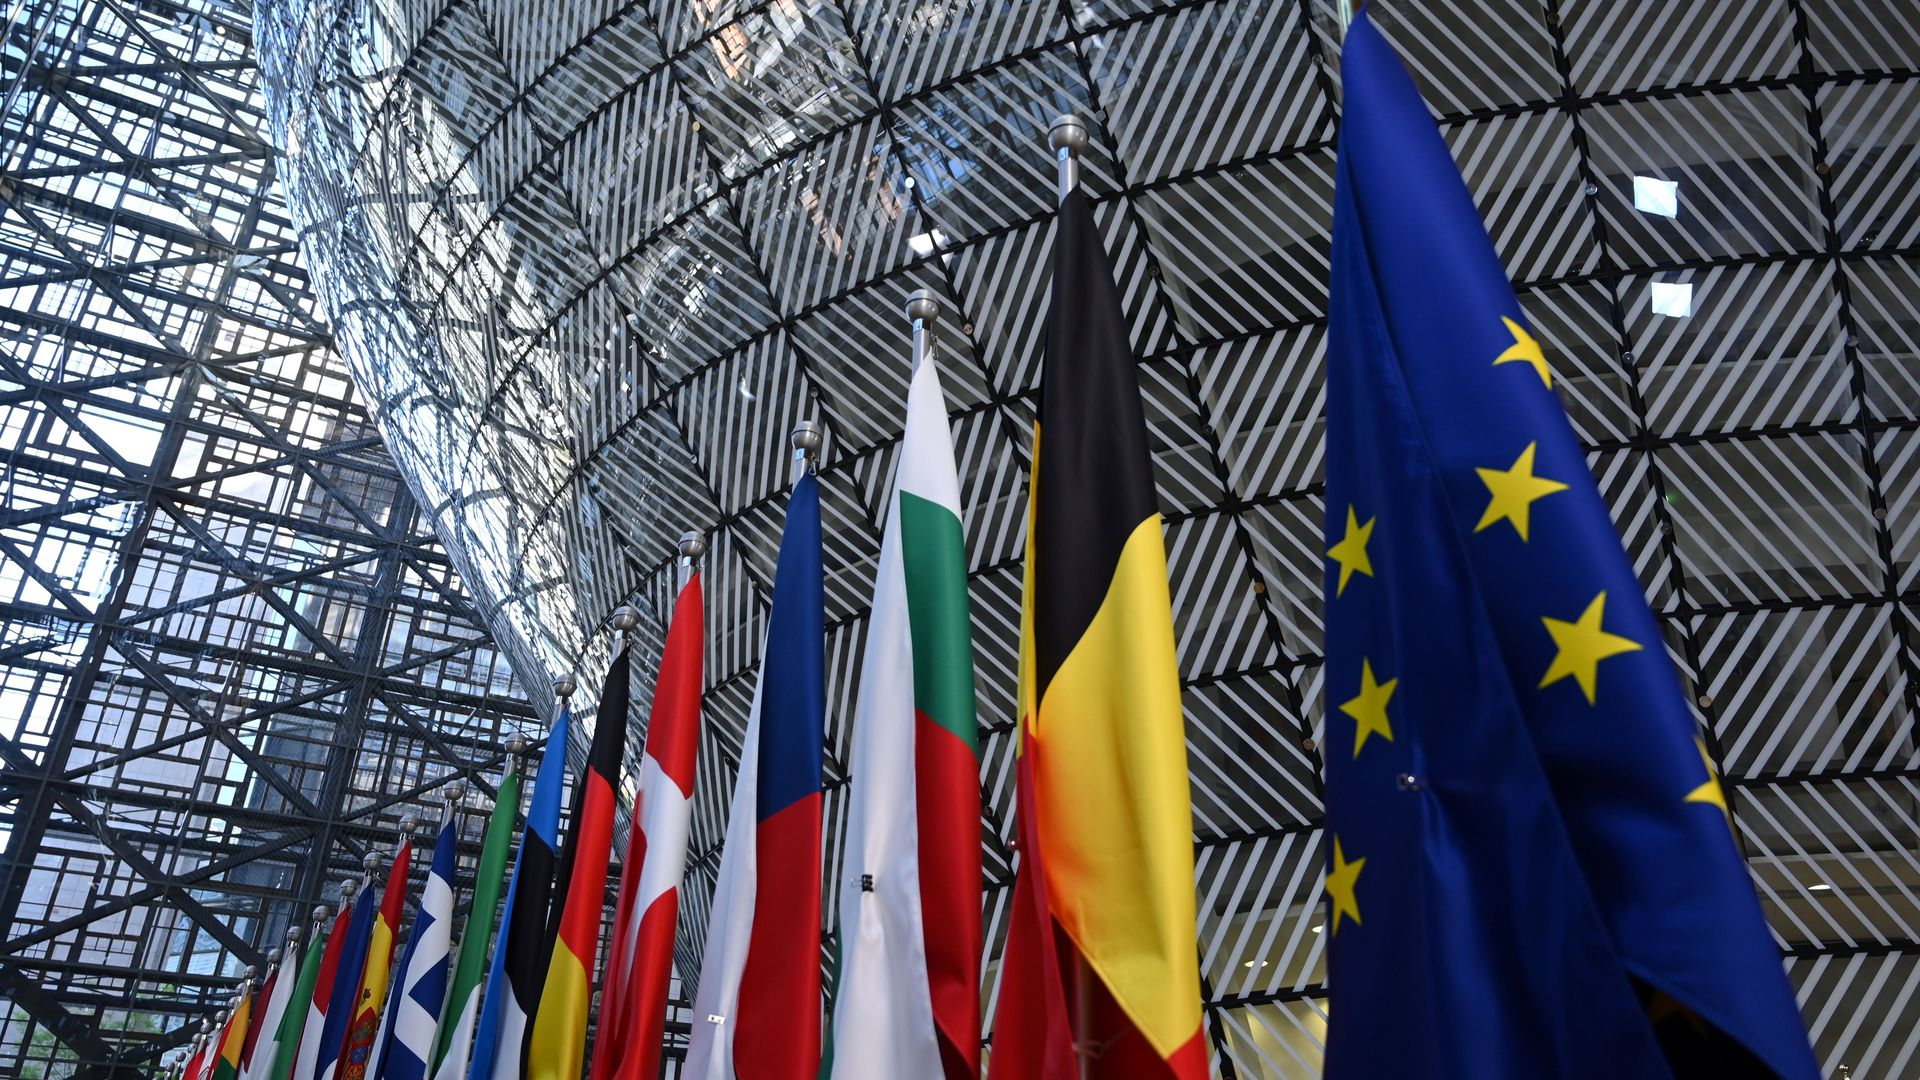 European Council building with European flags displayed